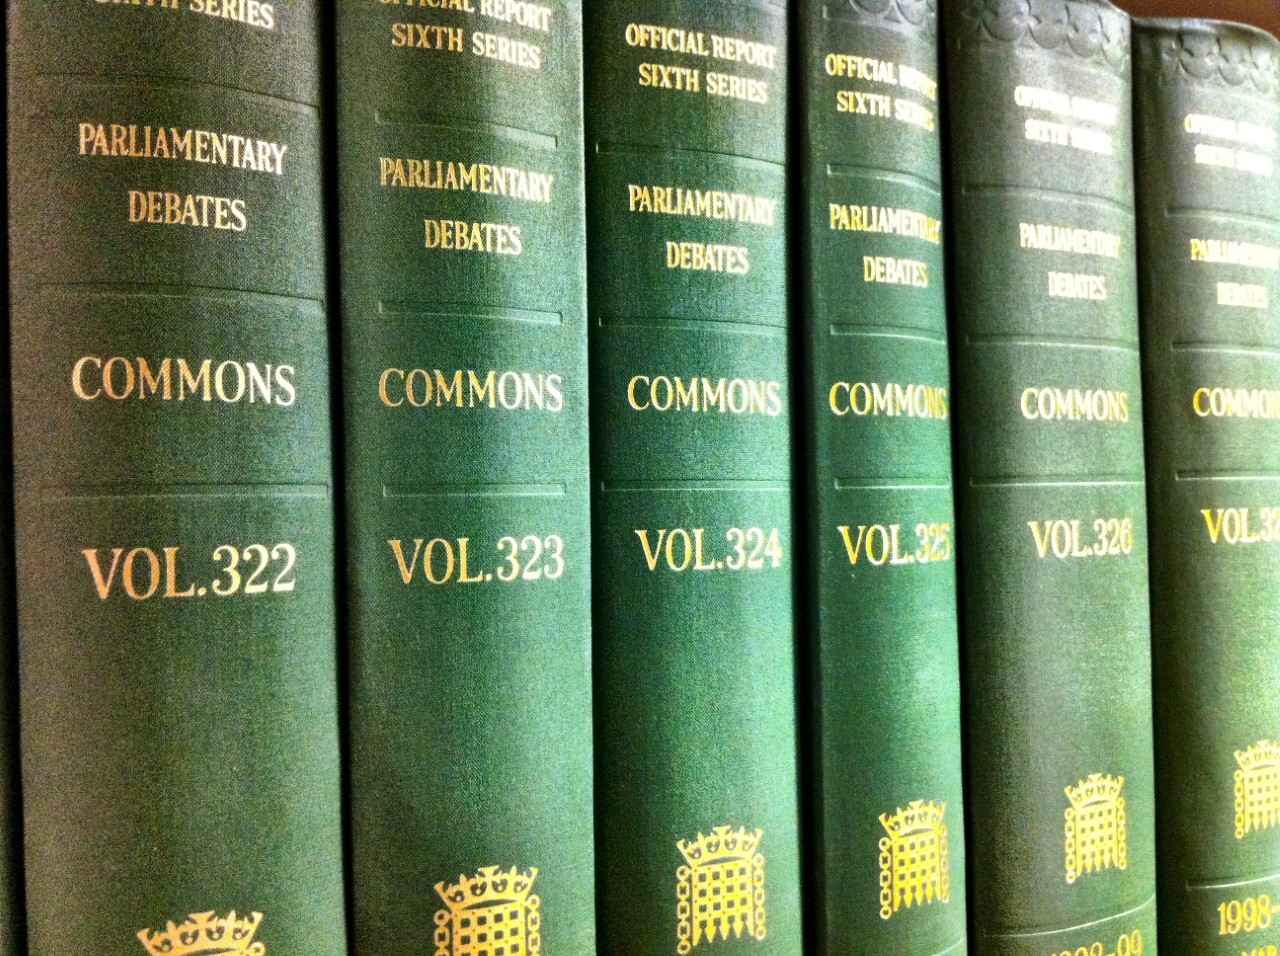 An image of Hansard volumes